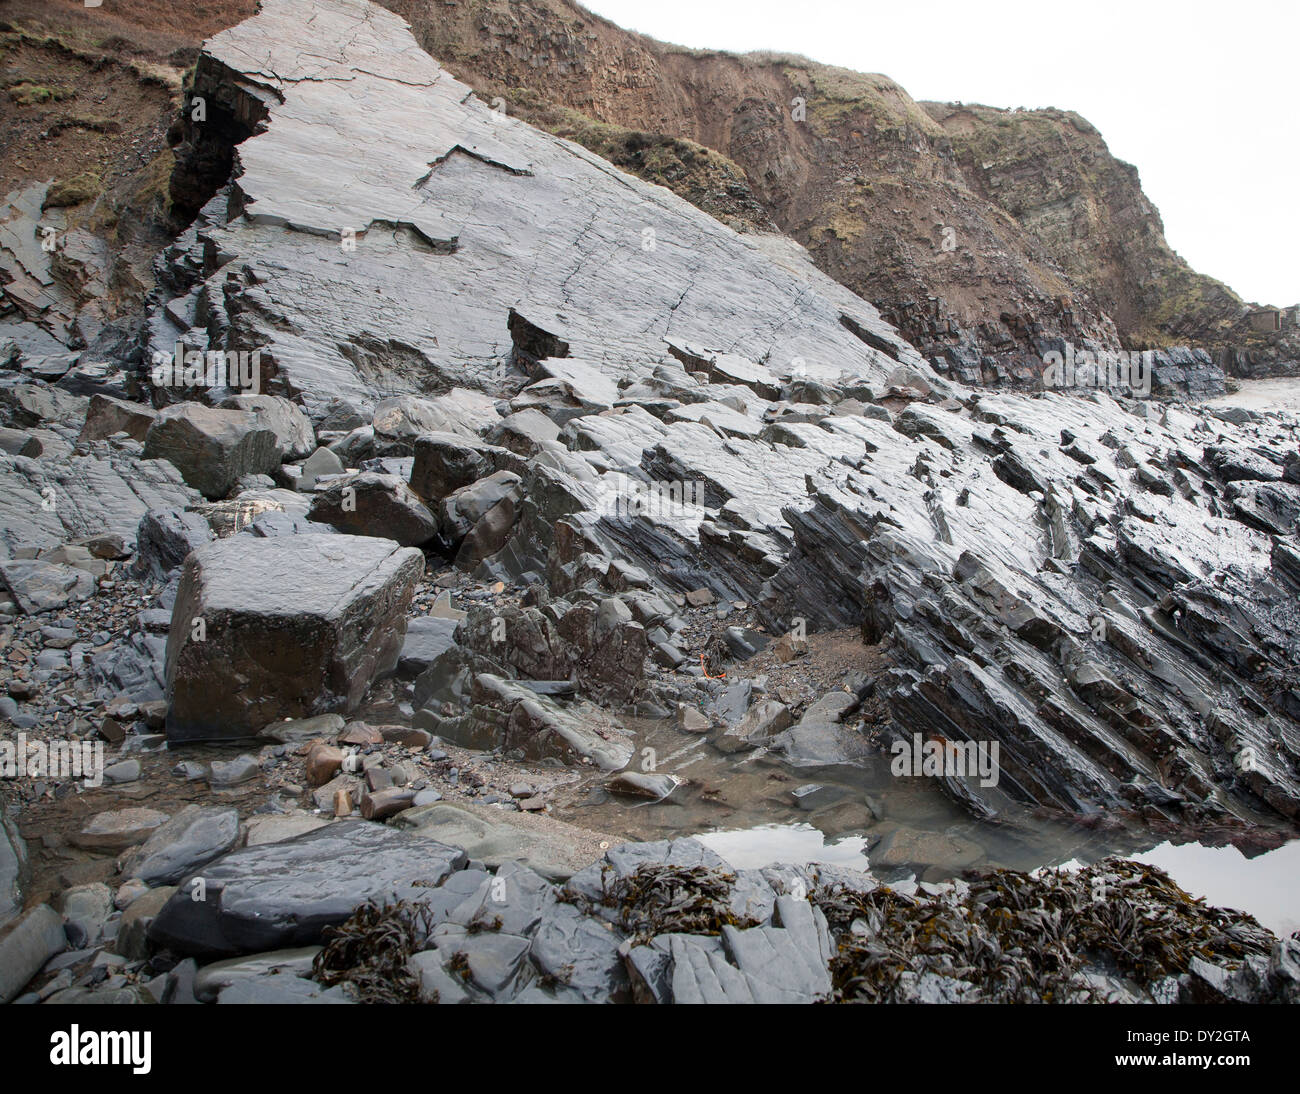 Rocky wave cut platform erosional landforms with ridges formed by eroded tilted strata at Hartland Quay, north Devon, England - Stock Image